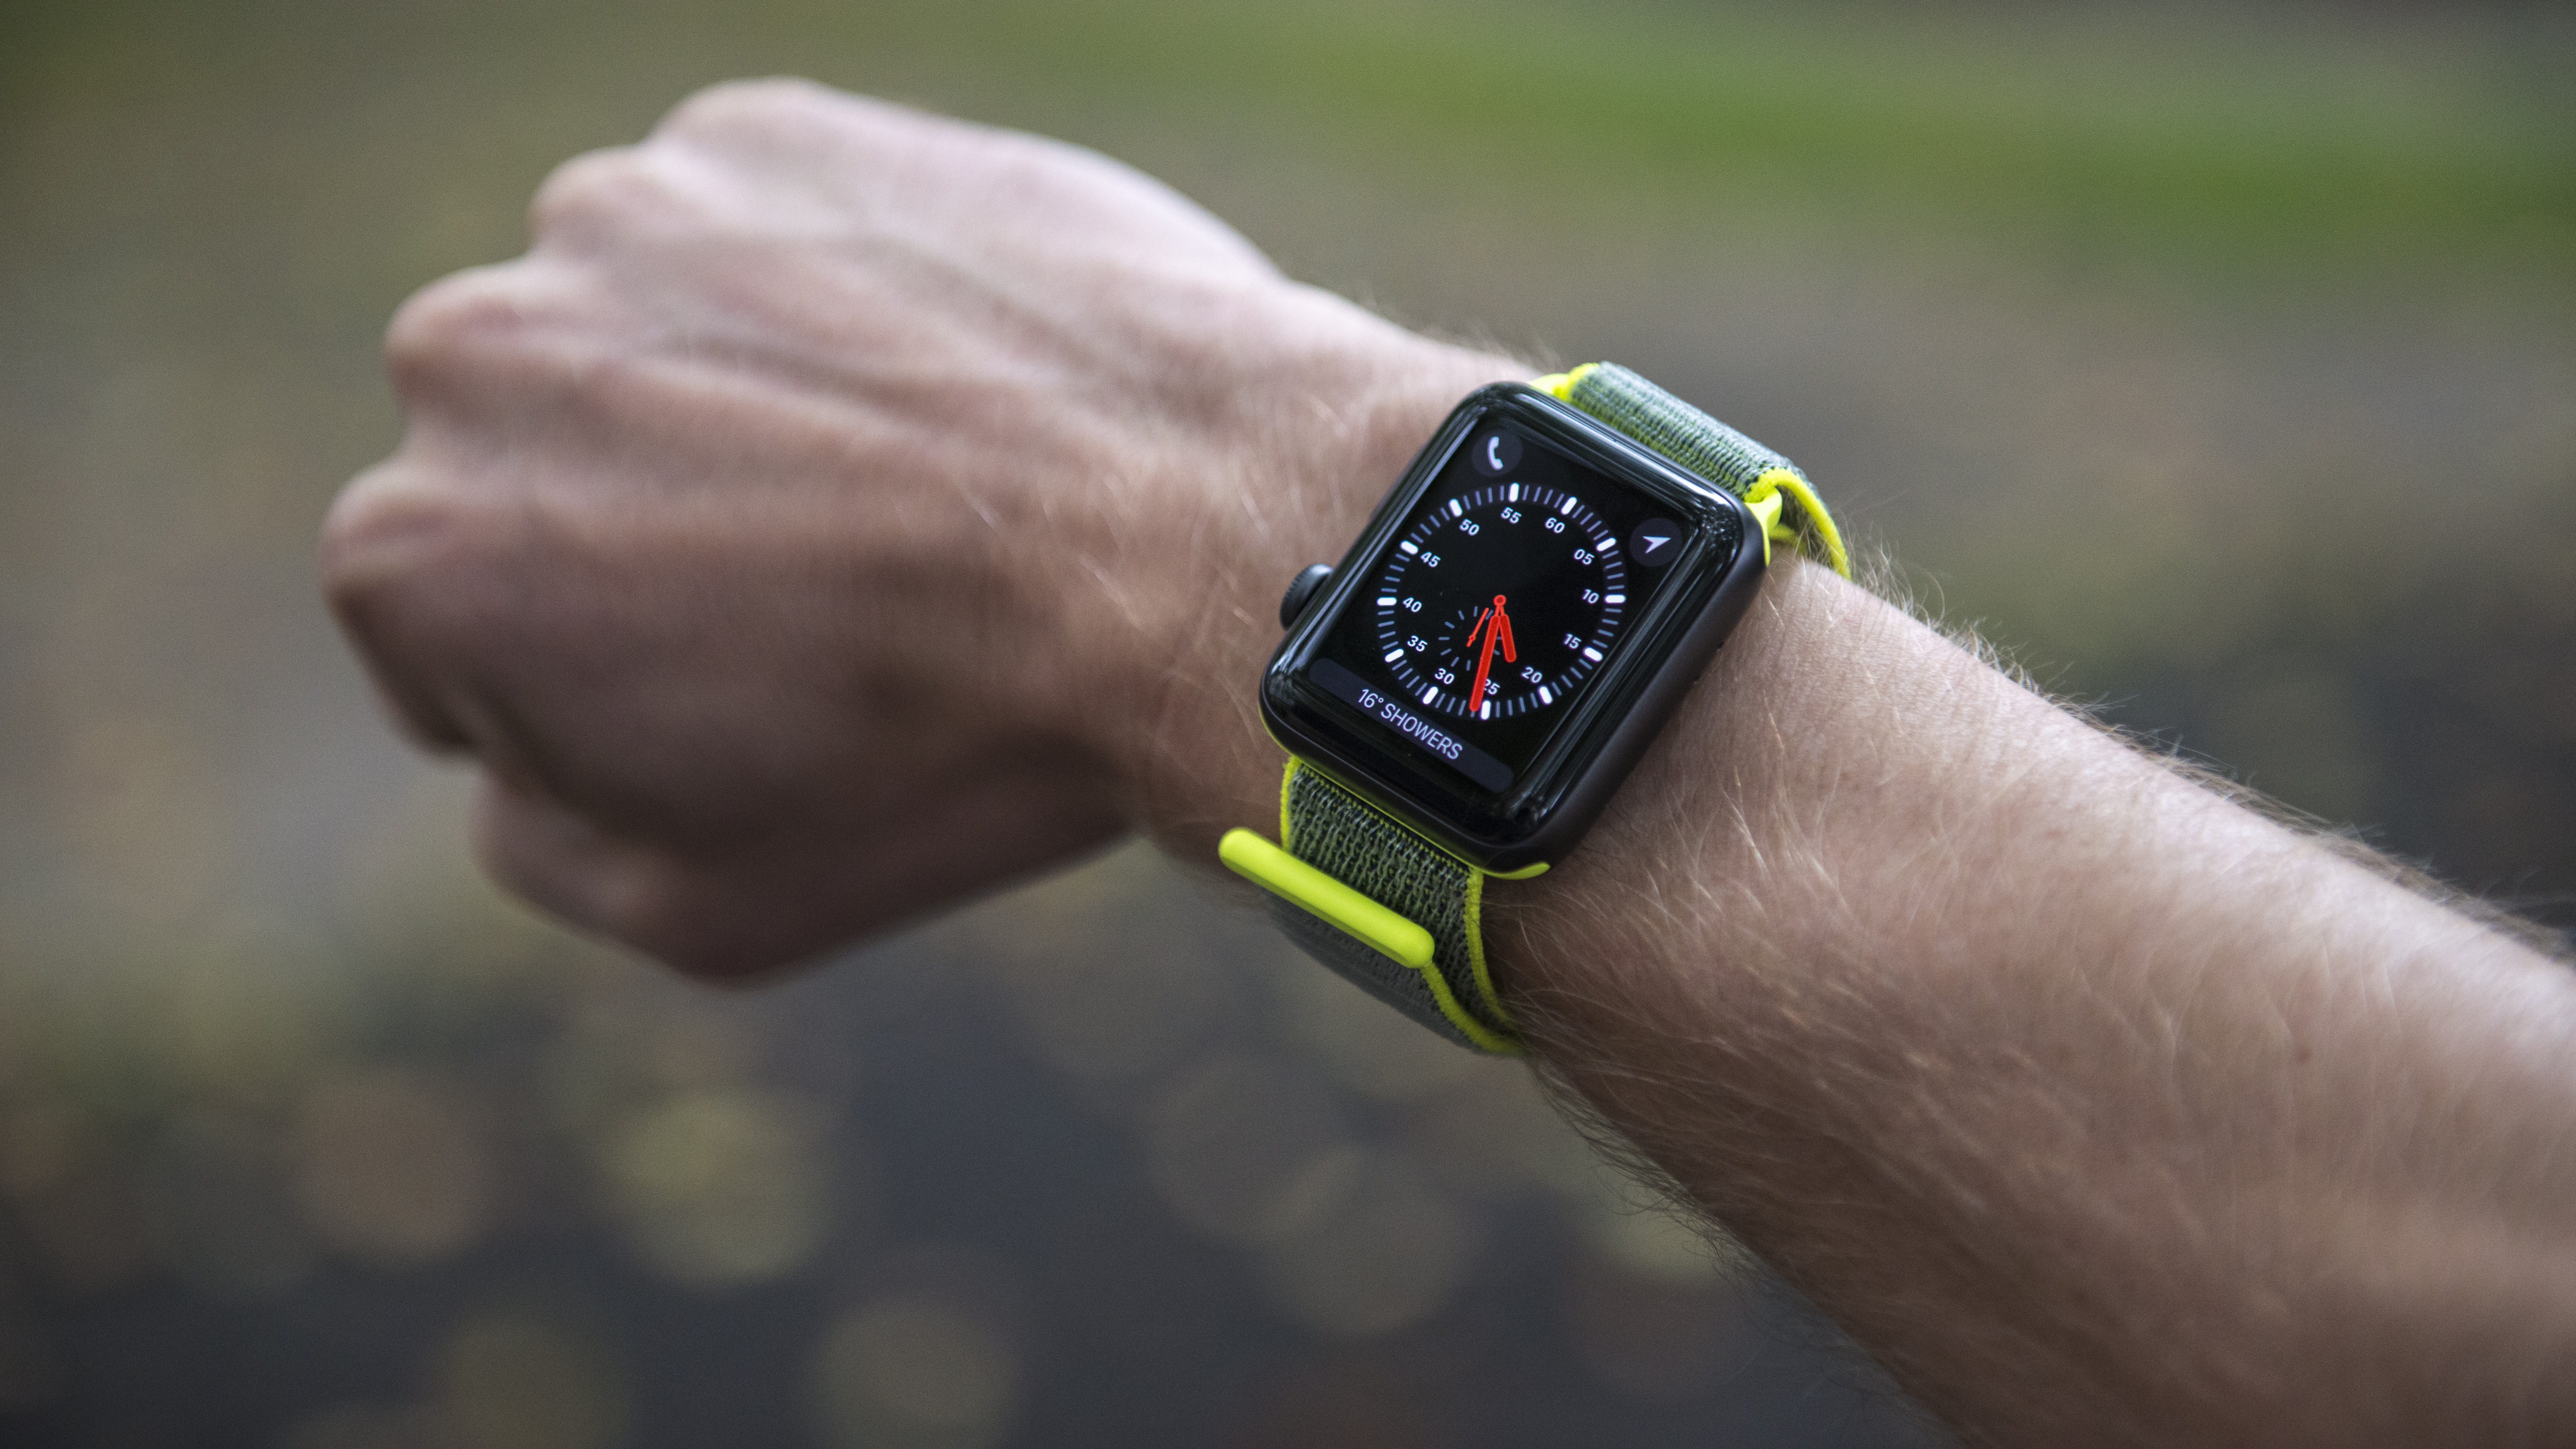 The Apple Watch 3 saw loads of deals over Black Friday 2019